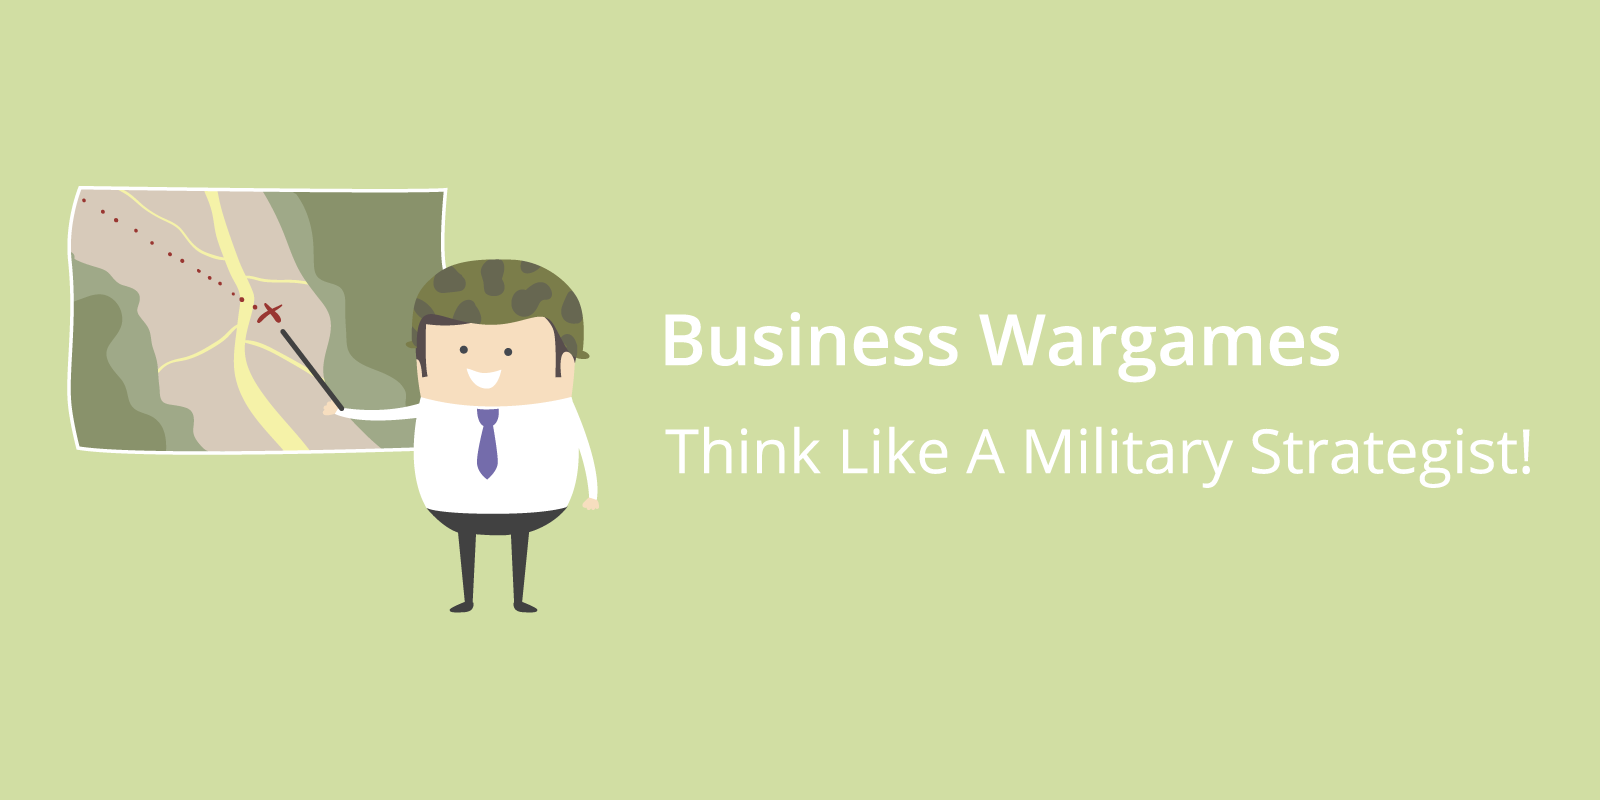 Business Wargames